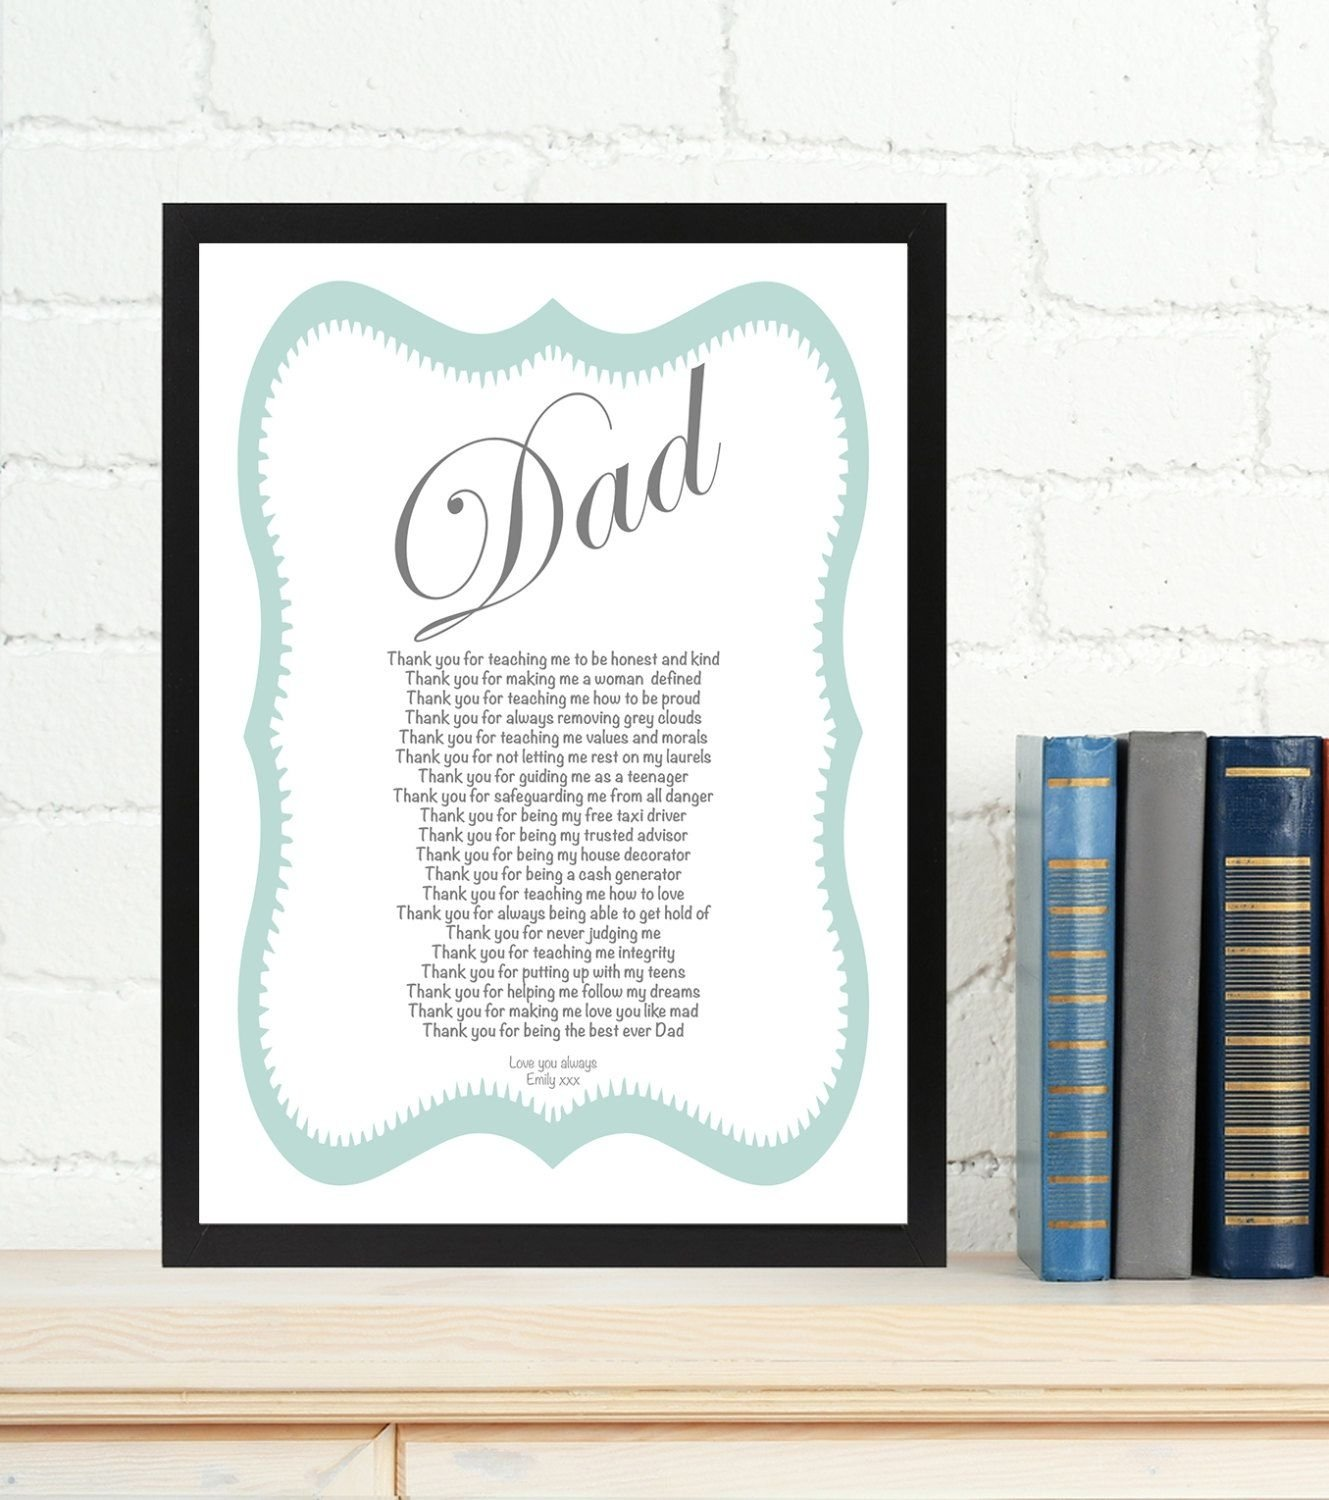 10 Stunning Birthday Gift Ideas For Dad From Daughter Personalised Poem Wedding